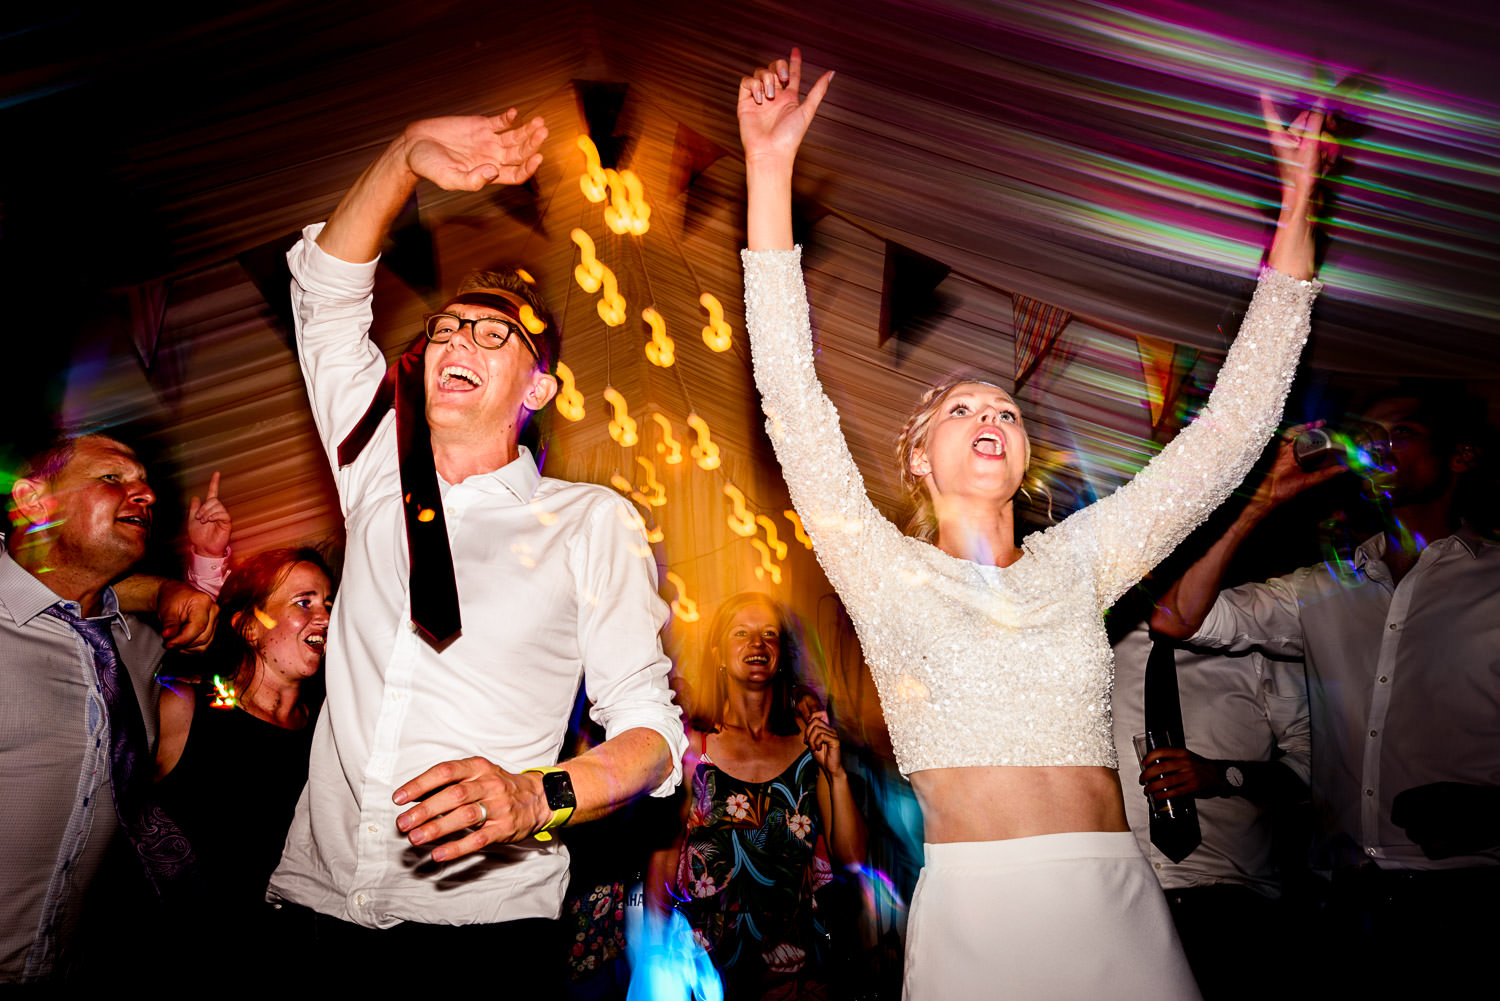 Dancing bride and groom at Devon wedding